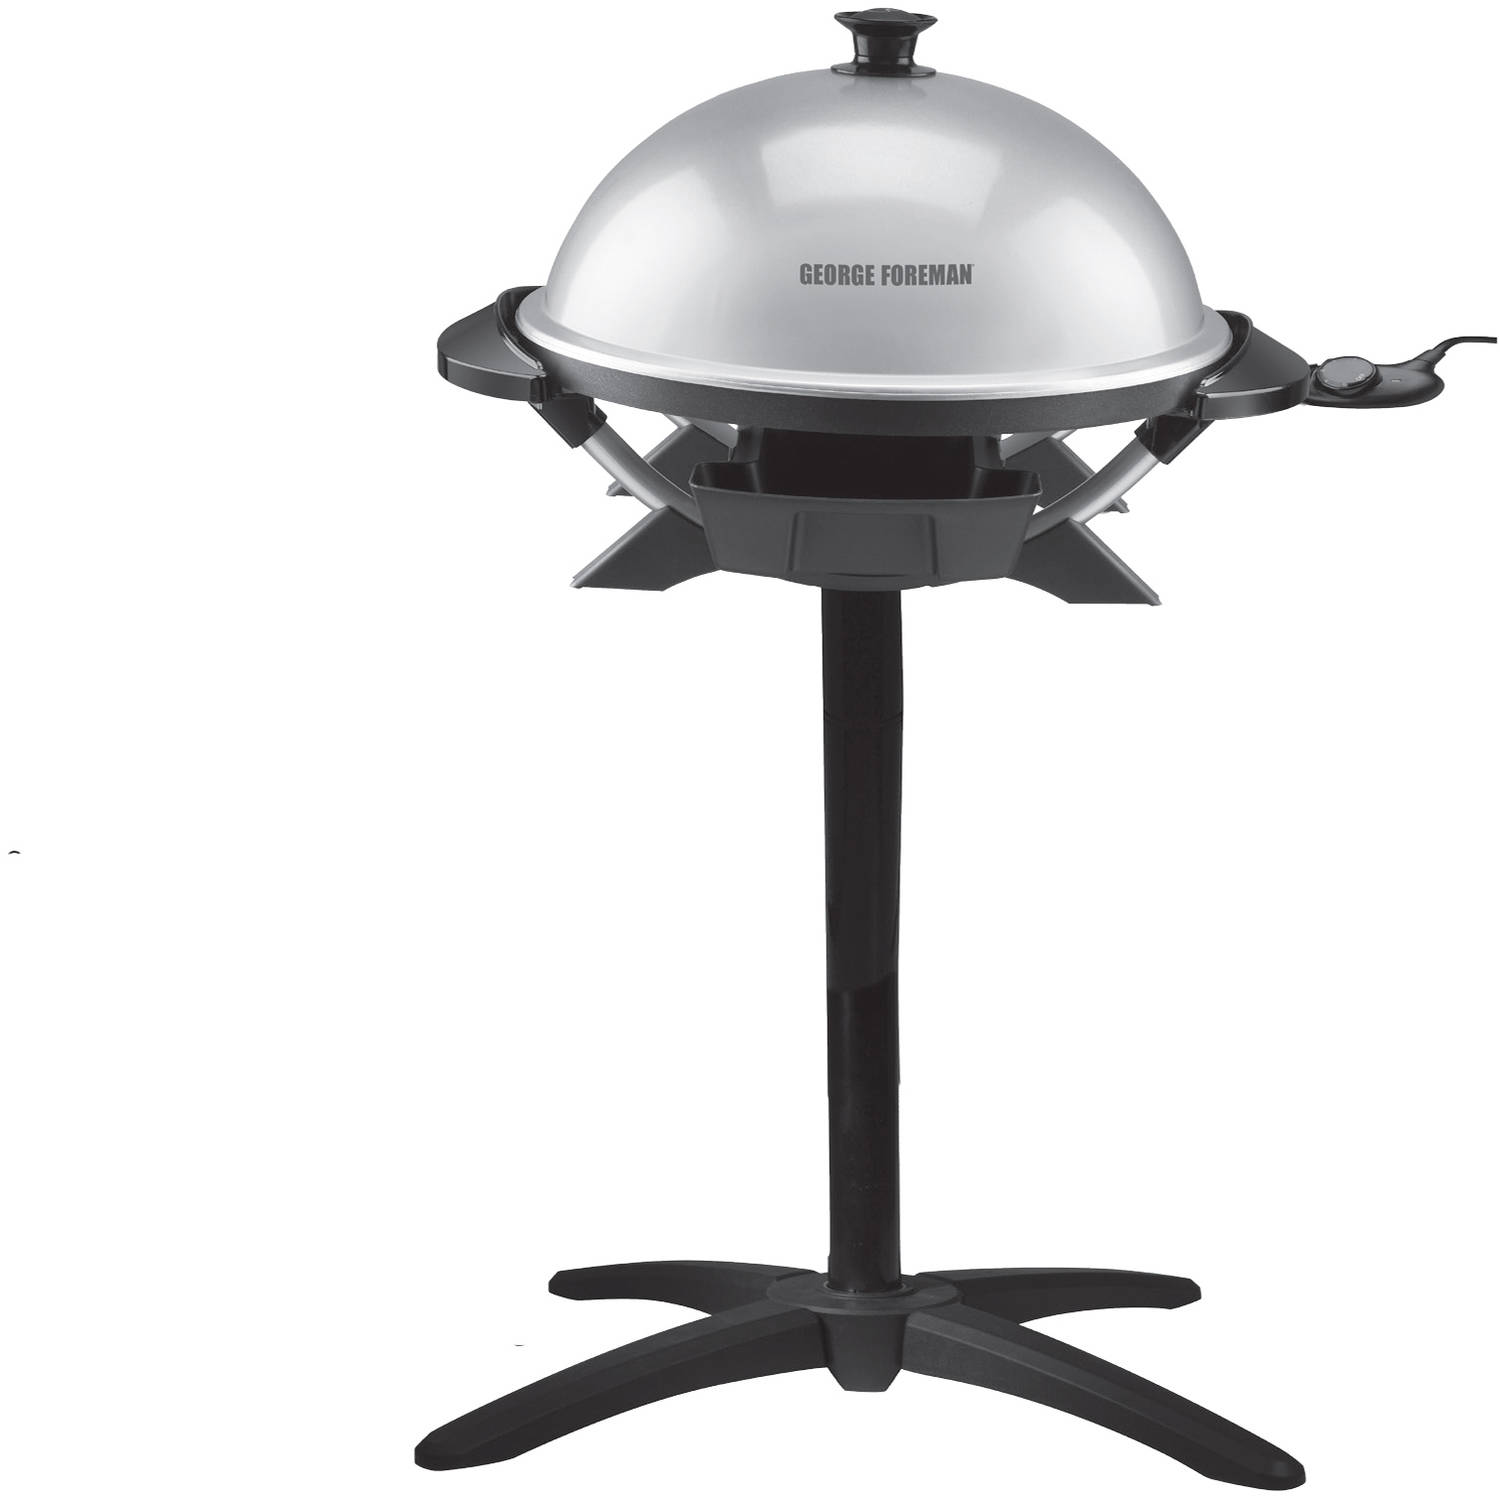 Good George Foreman 200 Cu In Indoor / Outdoor Electric Grill, GFO200S    Walmart.com